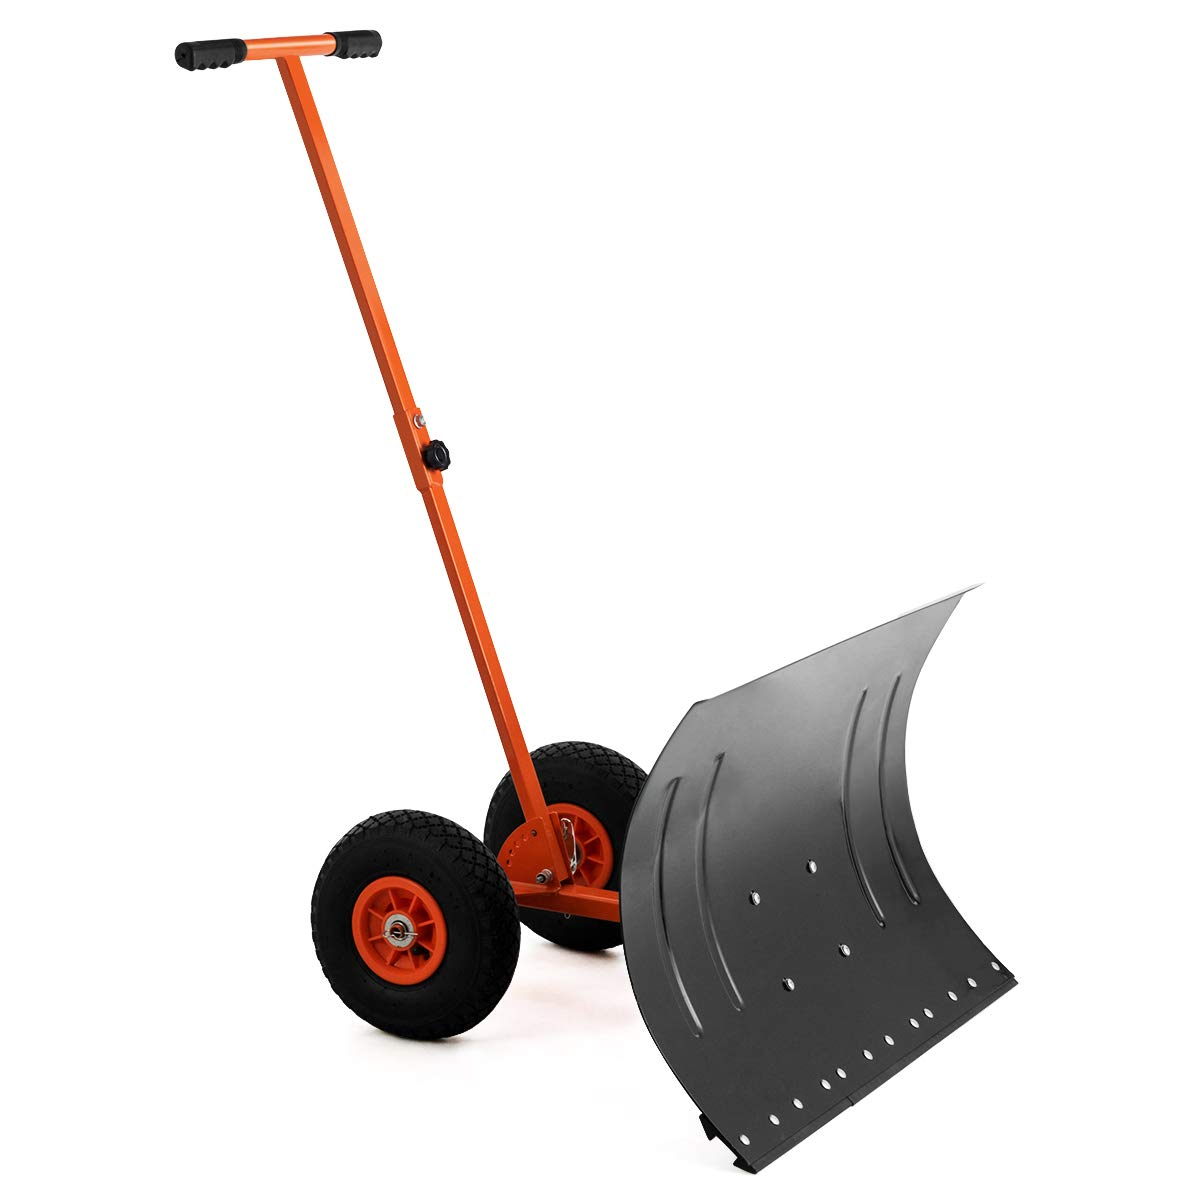 GYMAX Wheeled Snow Pusher, Heavy Duty Rolling Snow Pusher with Anti-Skid Wheels & Adjustable Handle, Driveway or Pavement Snow Removal Tool (Orange) by GYMAX